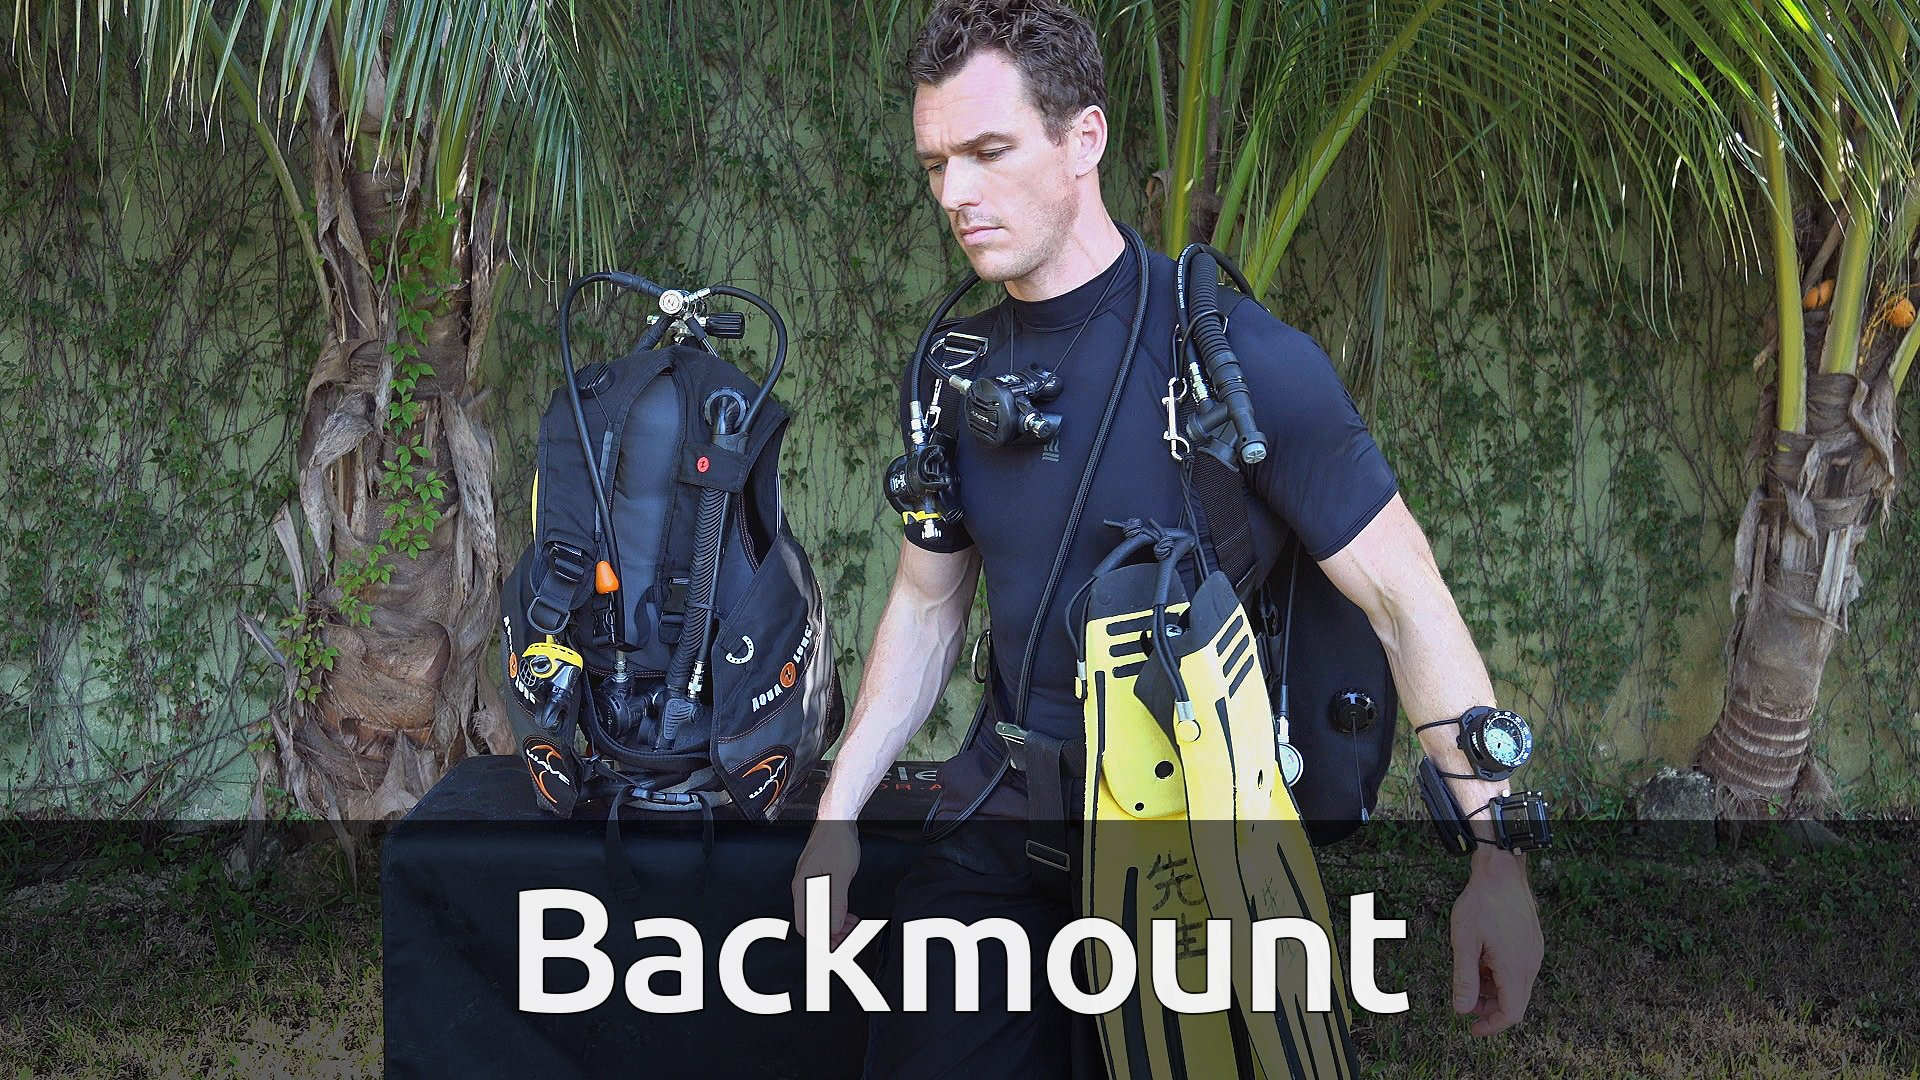 Backmount Essentials Course | 2 h 23 min split over 22 videos